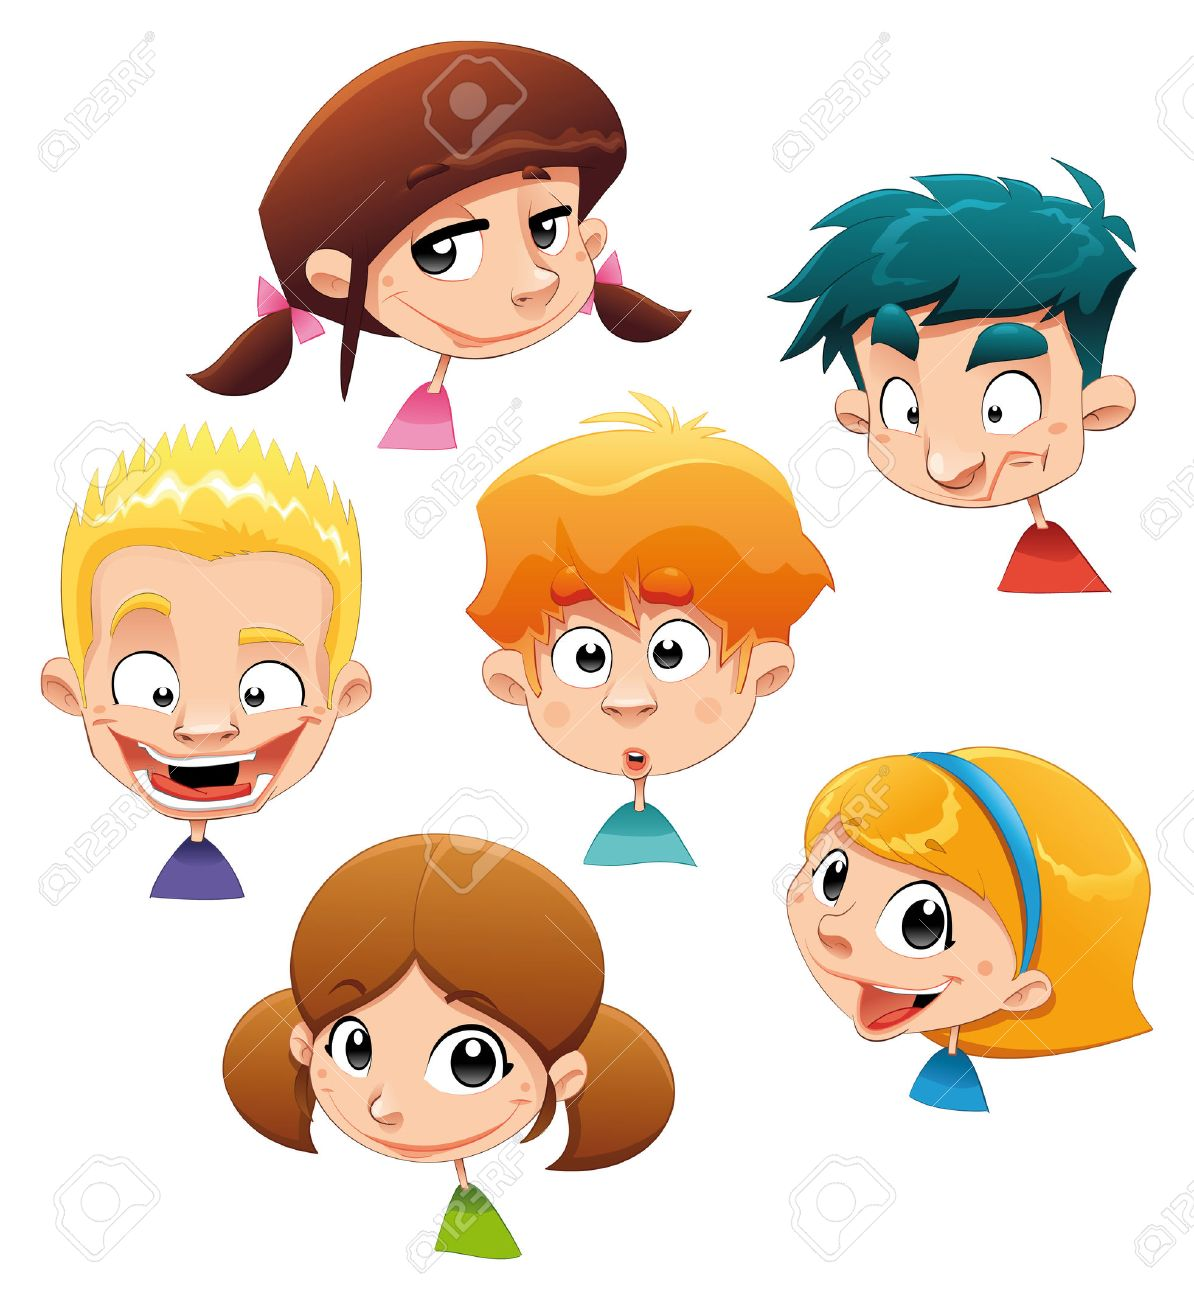 Set of different character expressions. Funny cartoon illustration. Isolated objects. Stock Vector - 7182471